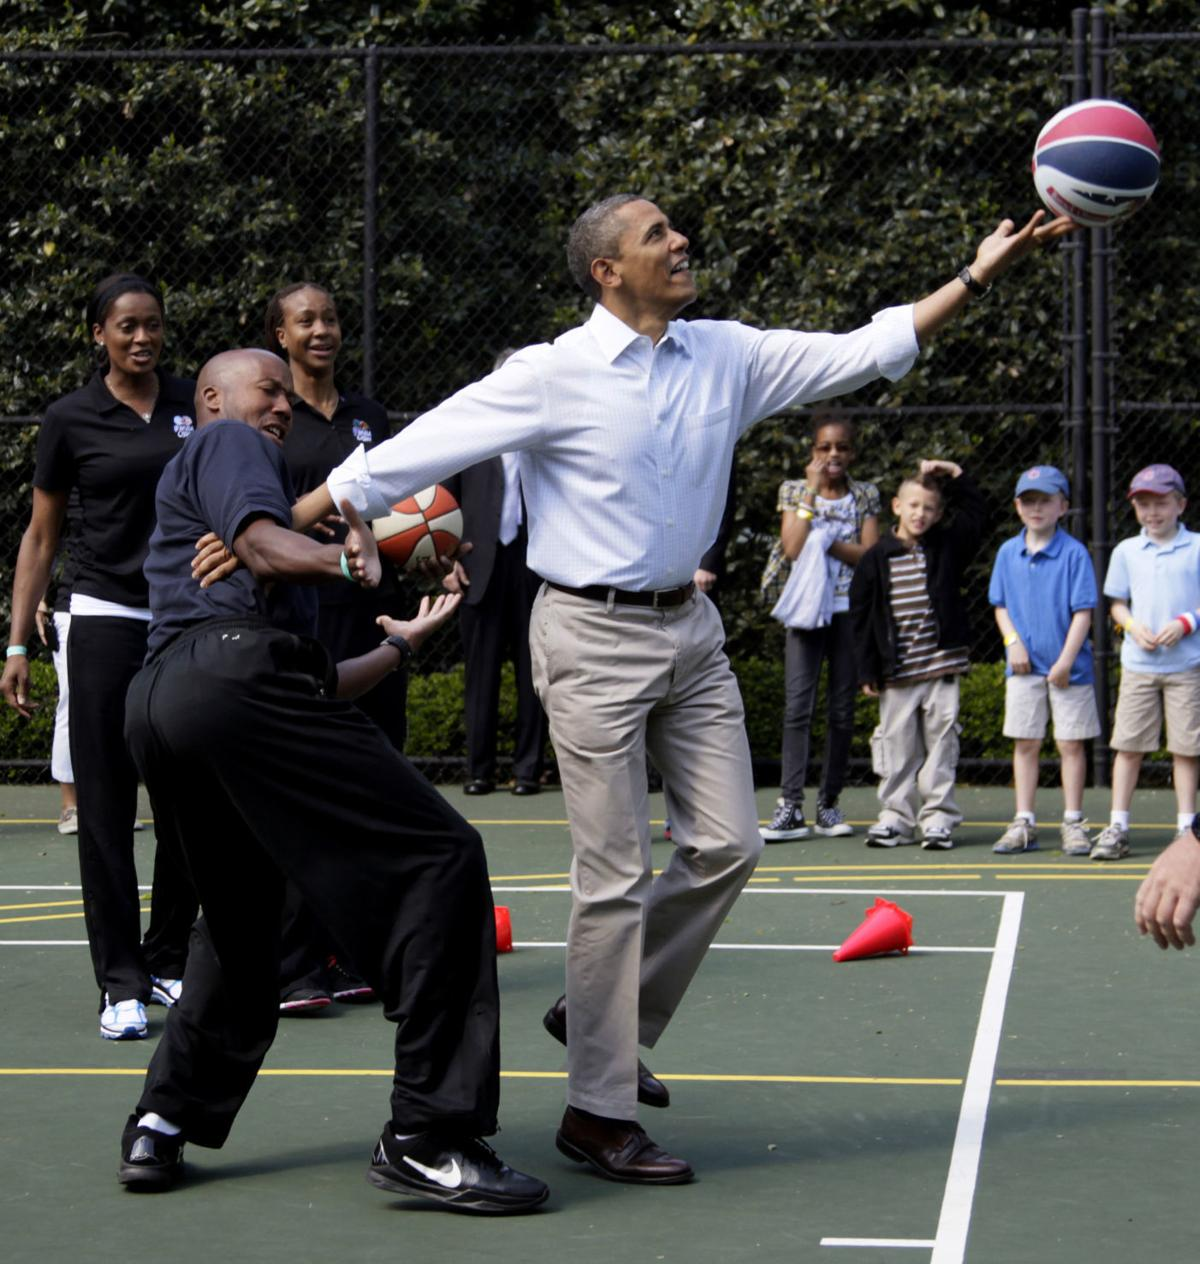 In this April 9, 2012, file photo, President Barack Obama plays basketball with former NBA basketball player Bruce Bowen during the annual White House Easter Egg Roll at the White House in Washington.— AP Photo/Carolyn Kaster, File